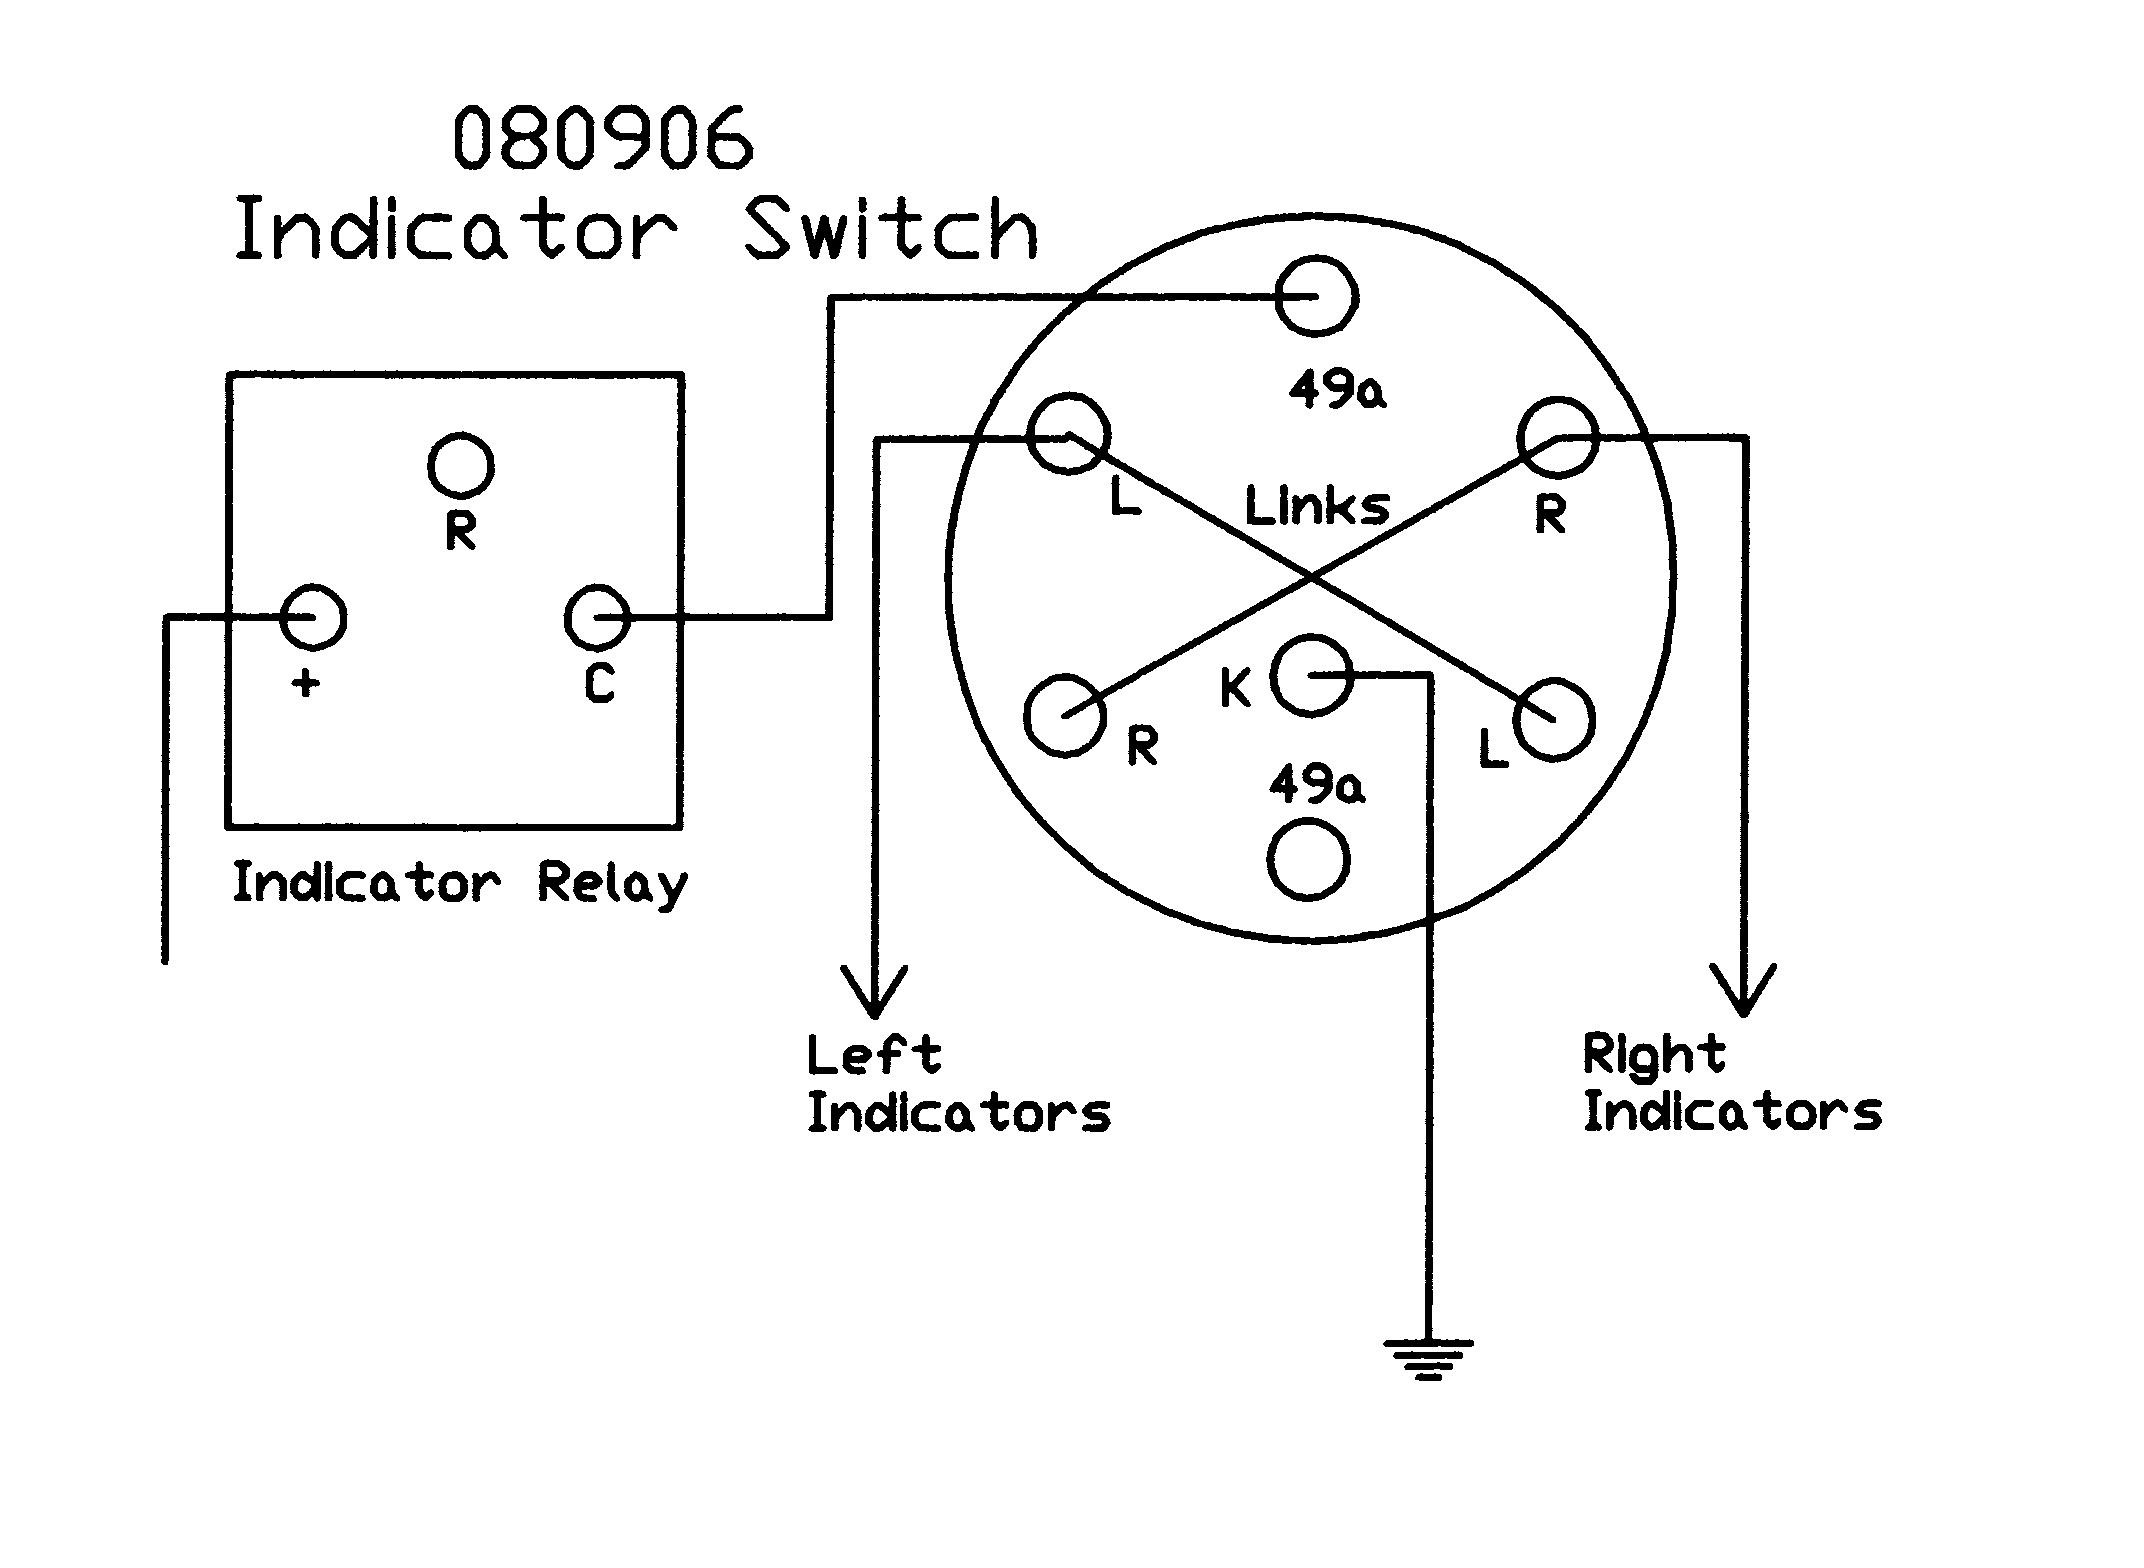 wiring diagram for rotary switch rotary switch black plastic lever and integral red warning lamp 080906 wiring diagram